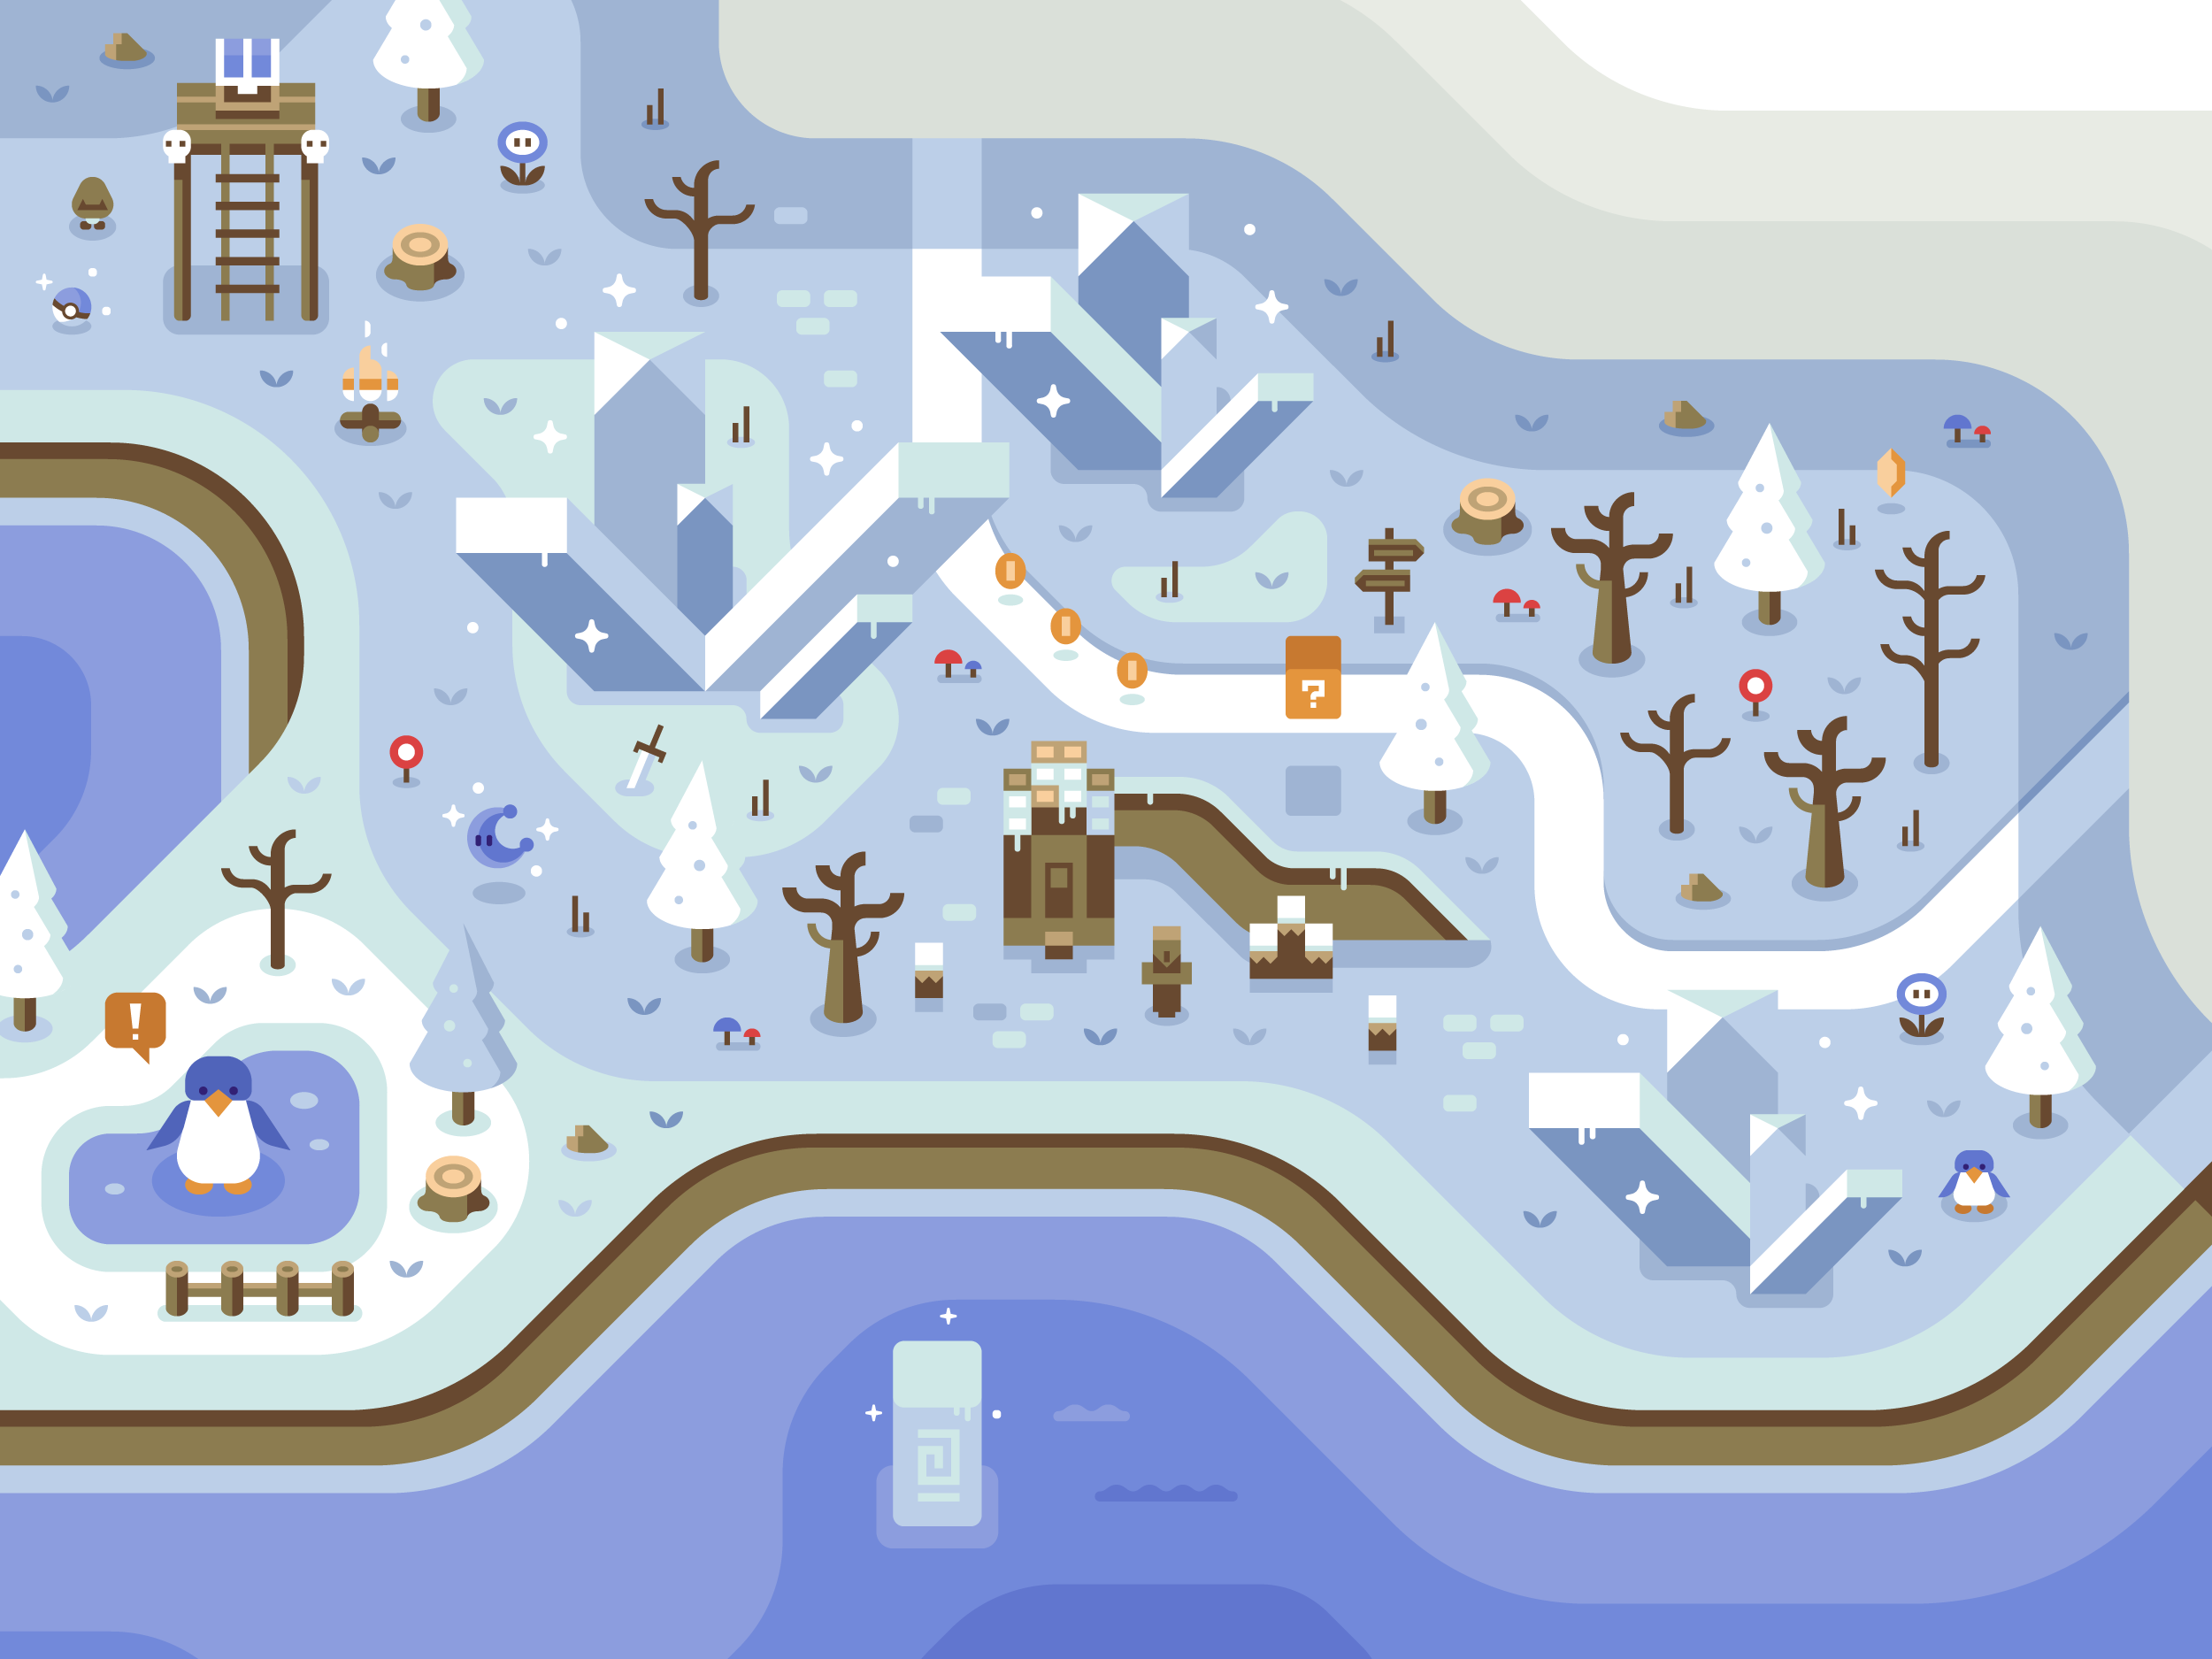 Mario 64 Penguin, Discord Office Mural illustrations by Matt Anderson and Canopy Design and Illustration